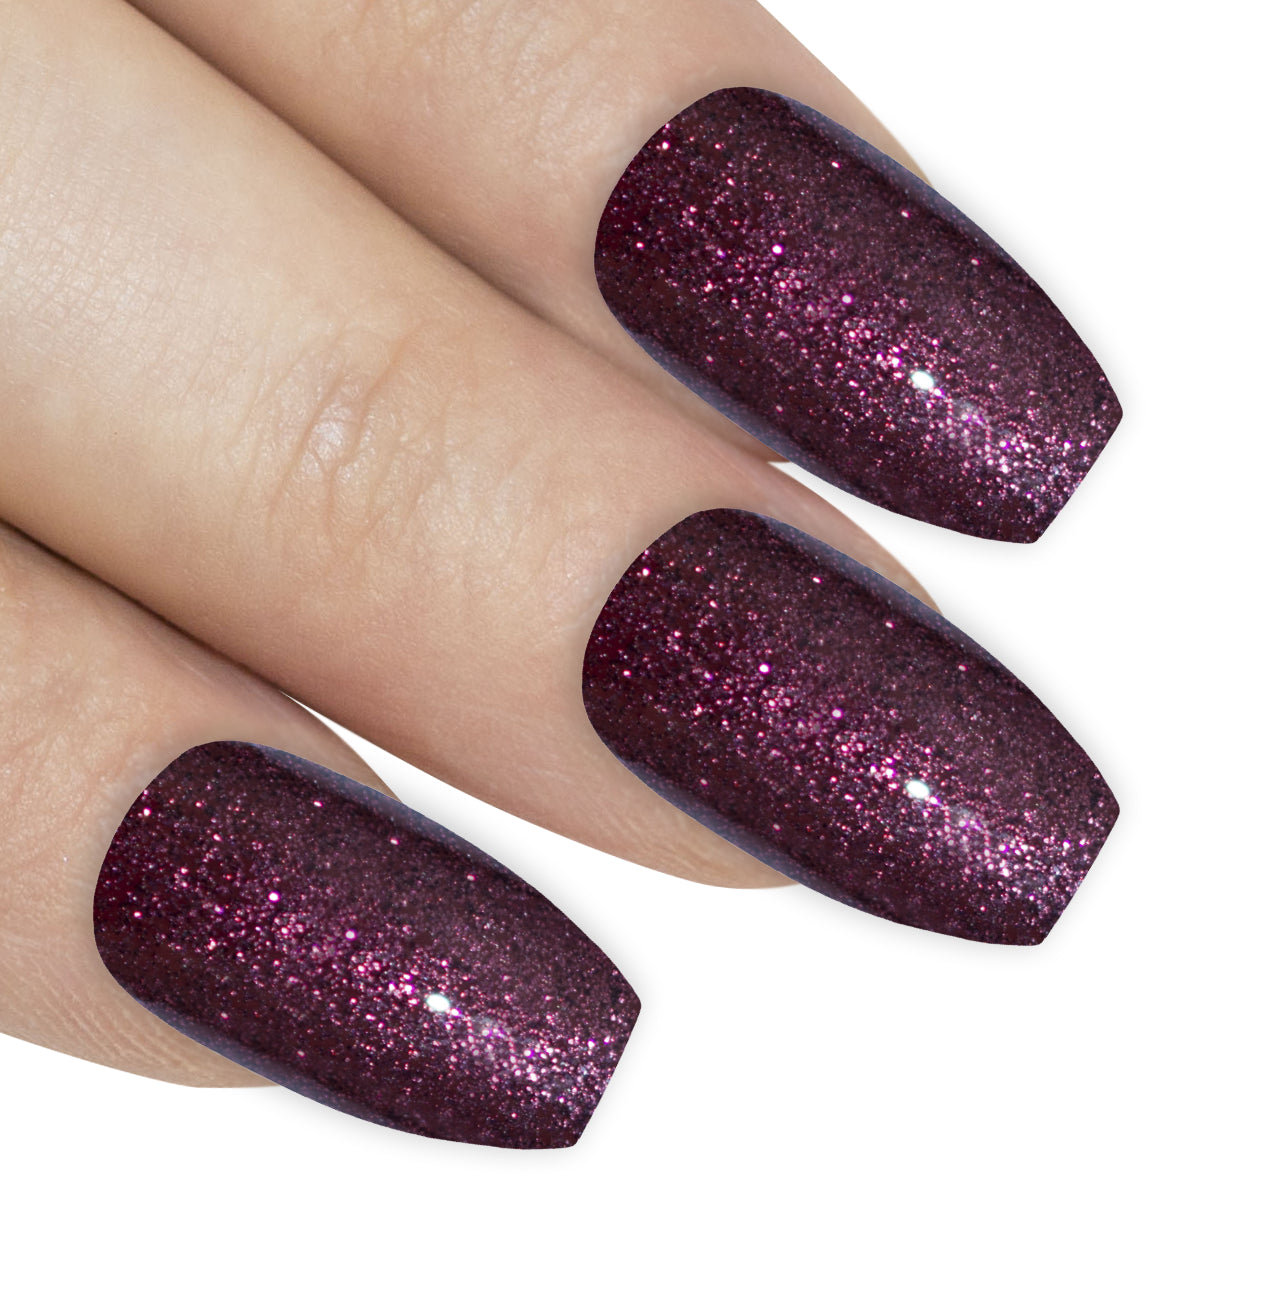 False Nails by Bling Art Red Brown Gel Ballerina Coffin Fake Long Acrylic Tips, Nail Care by Bling Art